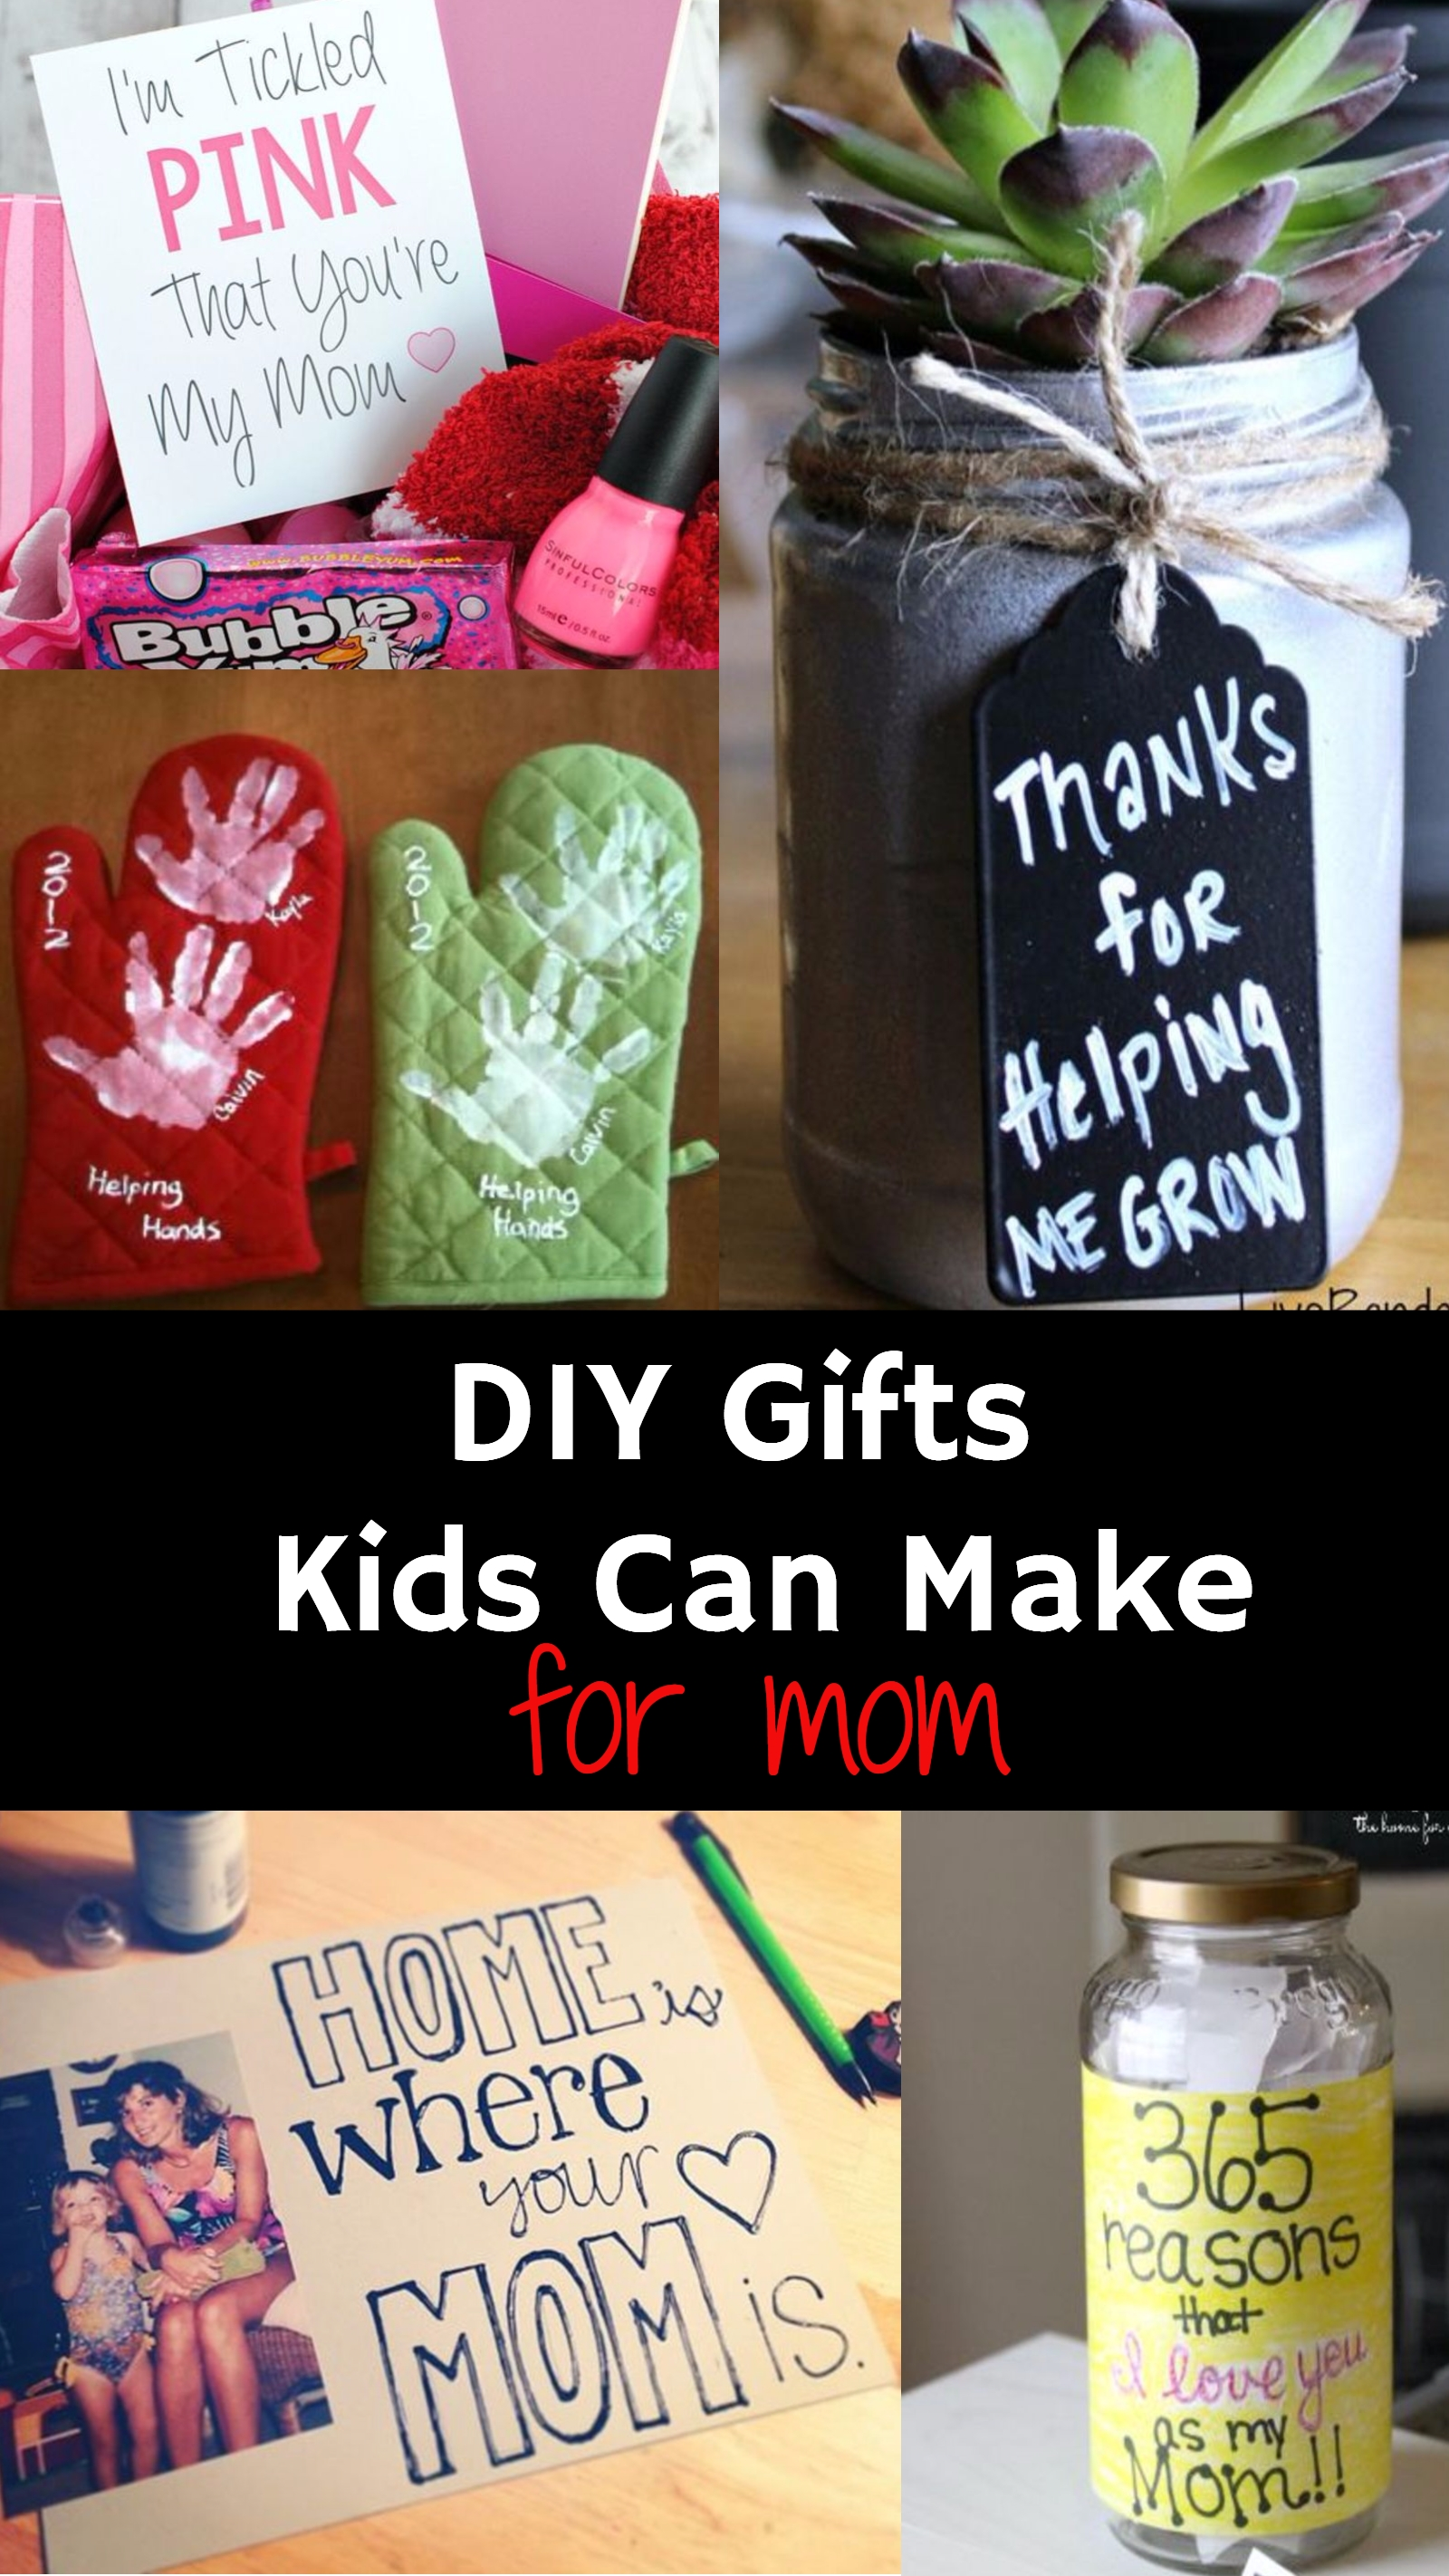 10 Stunning Christmas Gift Ideas For Kids To Make diy gifts for mom from kids grandmothers aunt and birthday gifts 2020